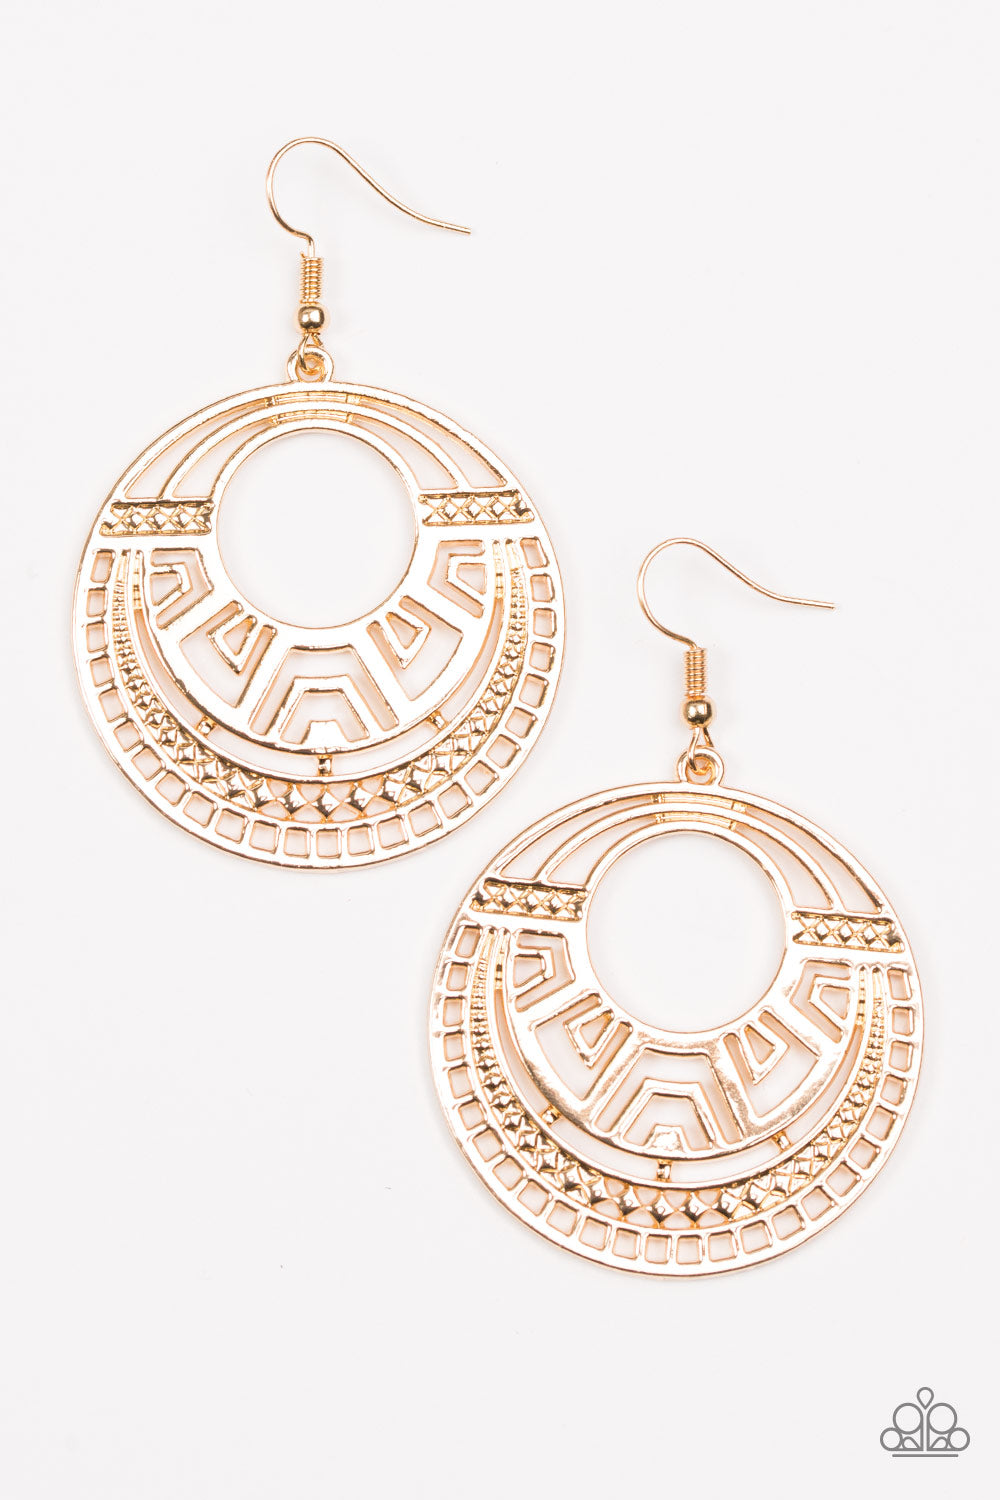 Paparazzi Accessories - Paparazzi Earring - Modernly Mayan - Gold - Earrings